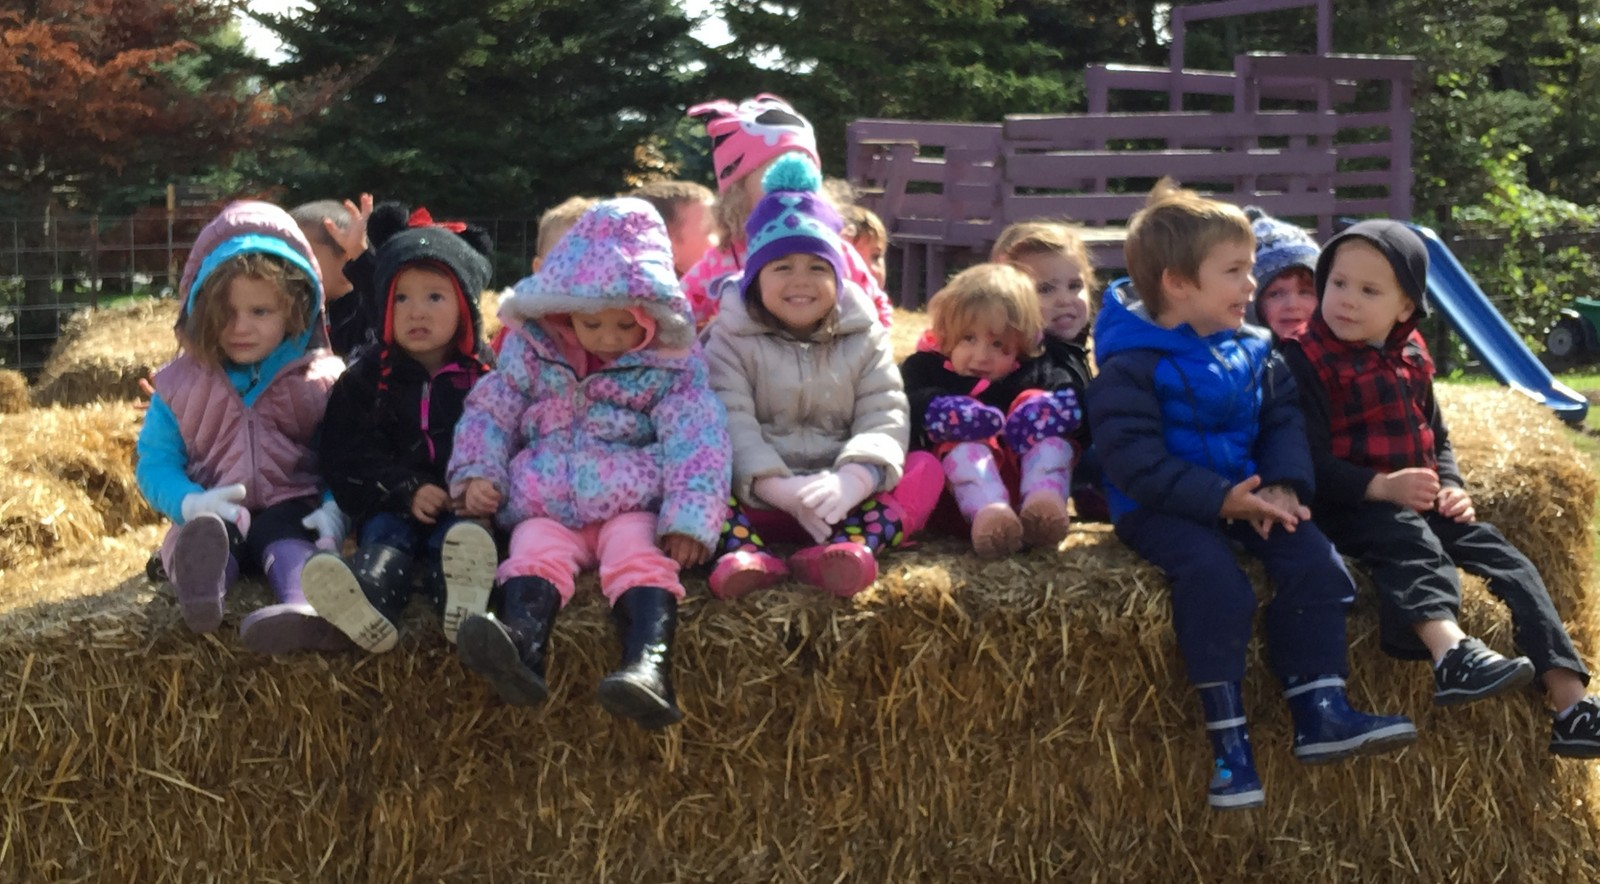 Kids can take a wagon ride, visit farm animals and pick their own pumpkins at Becker Farms.